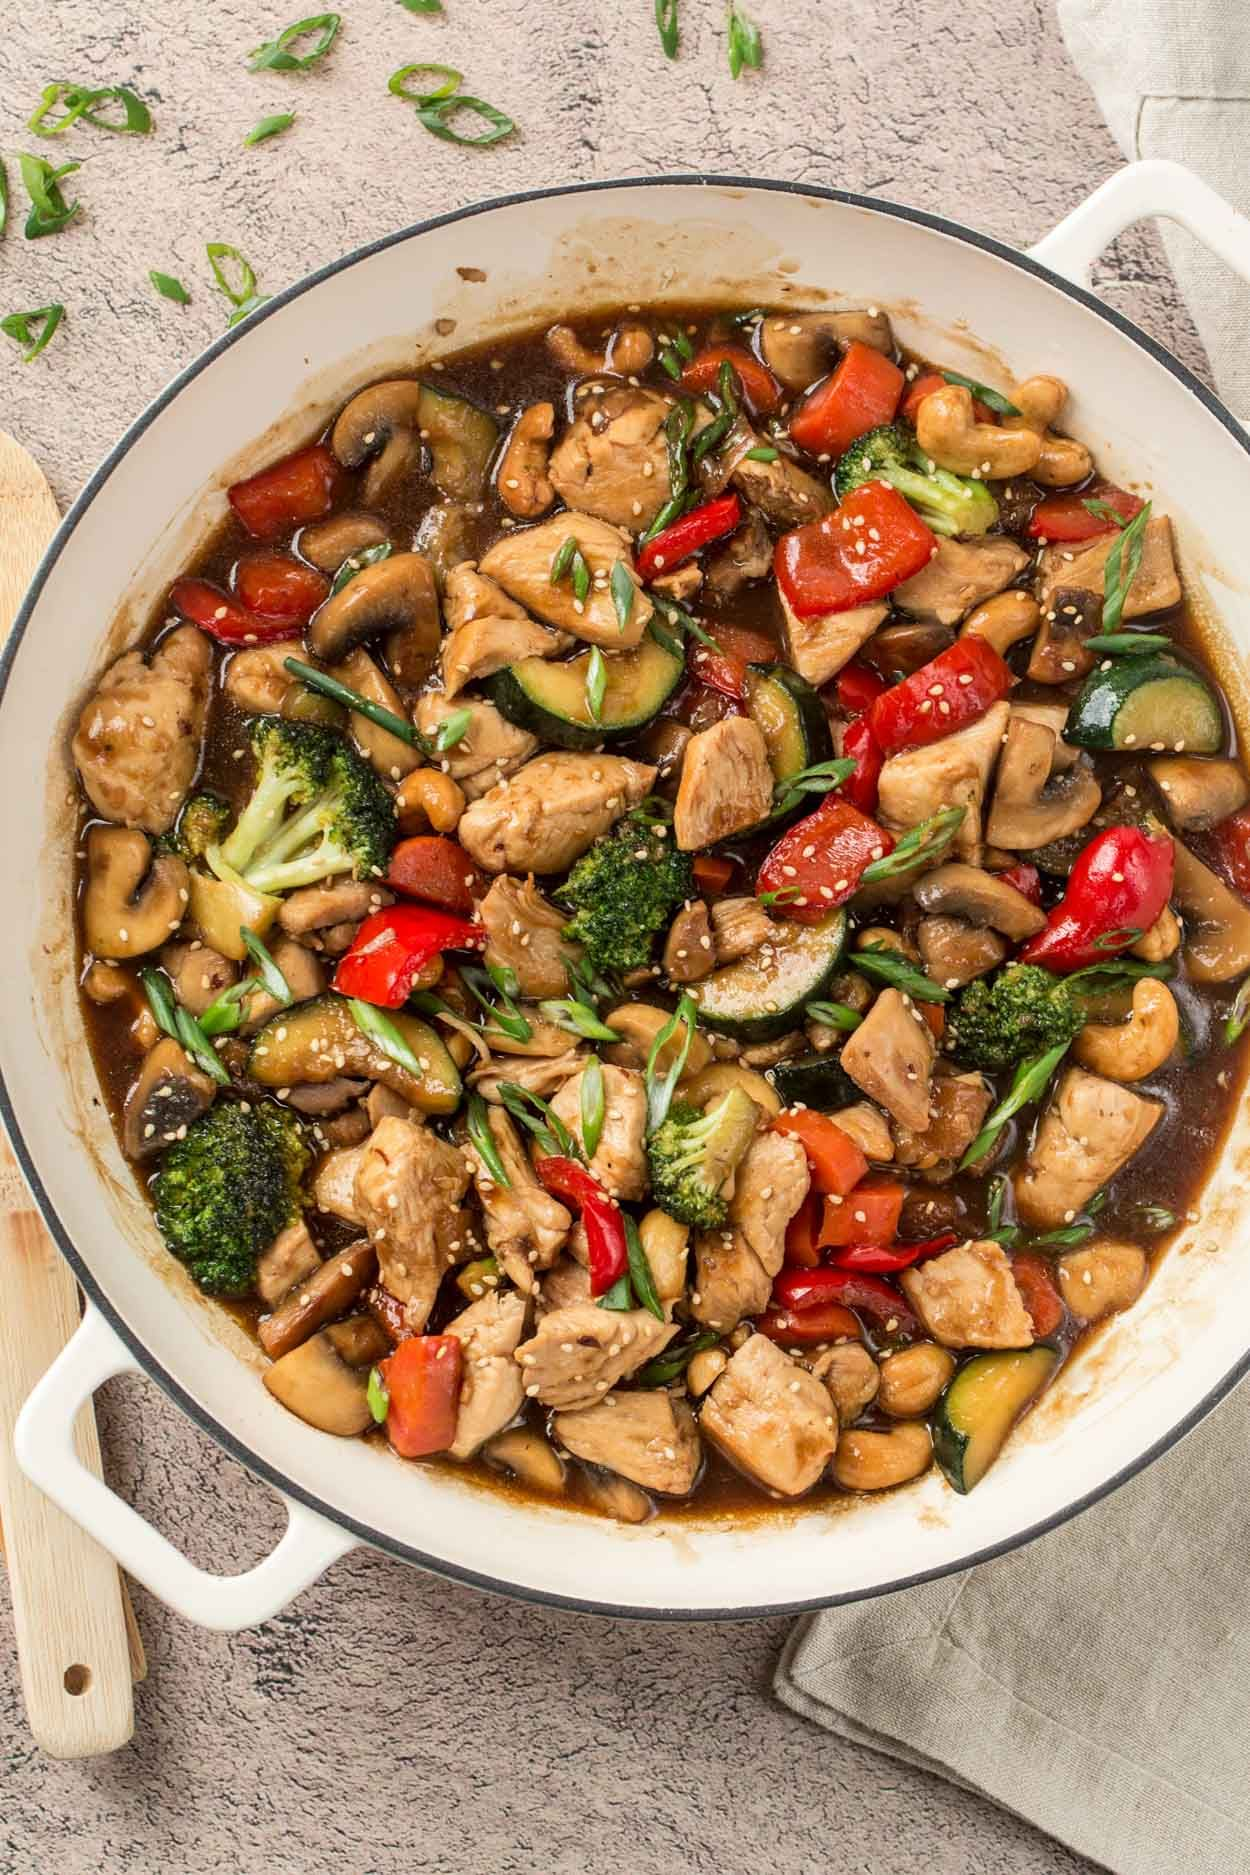 An easy chicken stir fry recipe made with vegetables and a homemade stir fry sauce. Served great over rice or noodles. #stirfrysauce